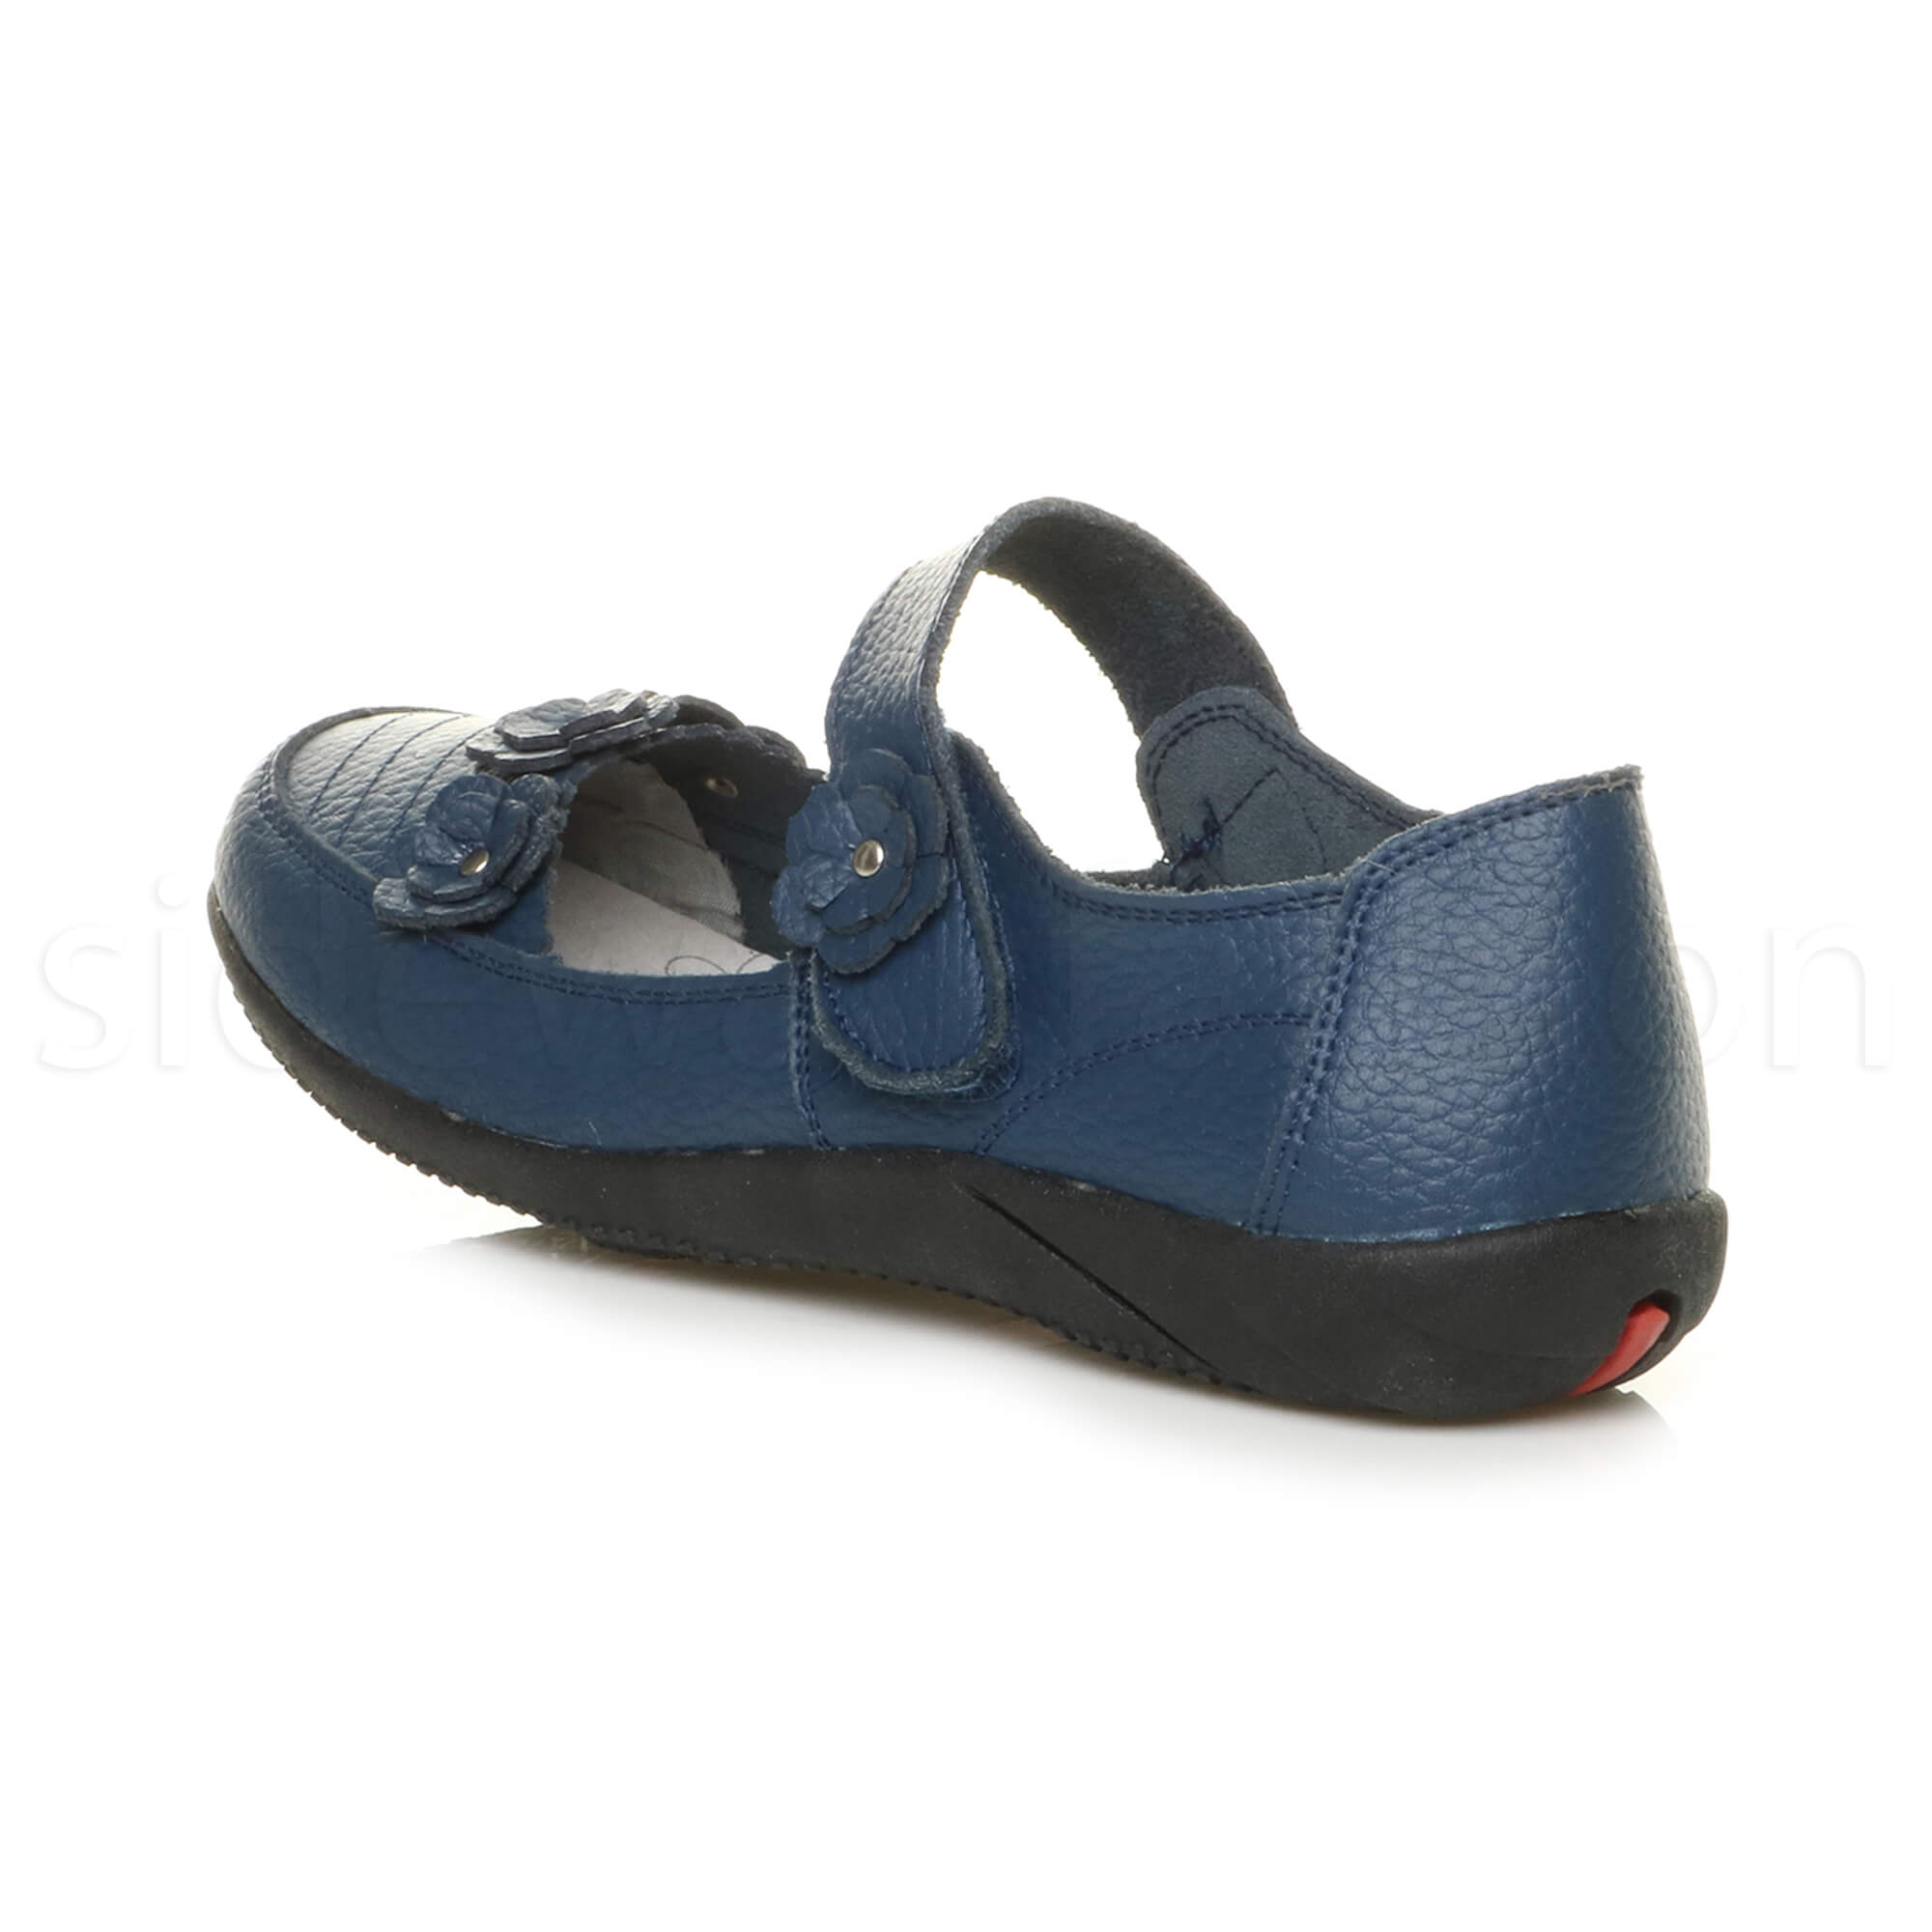 Womens-ladies-leather-comfort-walking-casual-sandals-mary-jane-strap-shoes-size thumbnail 35